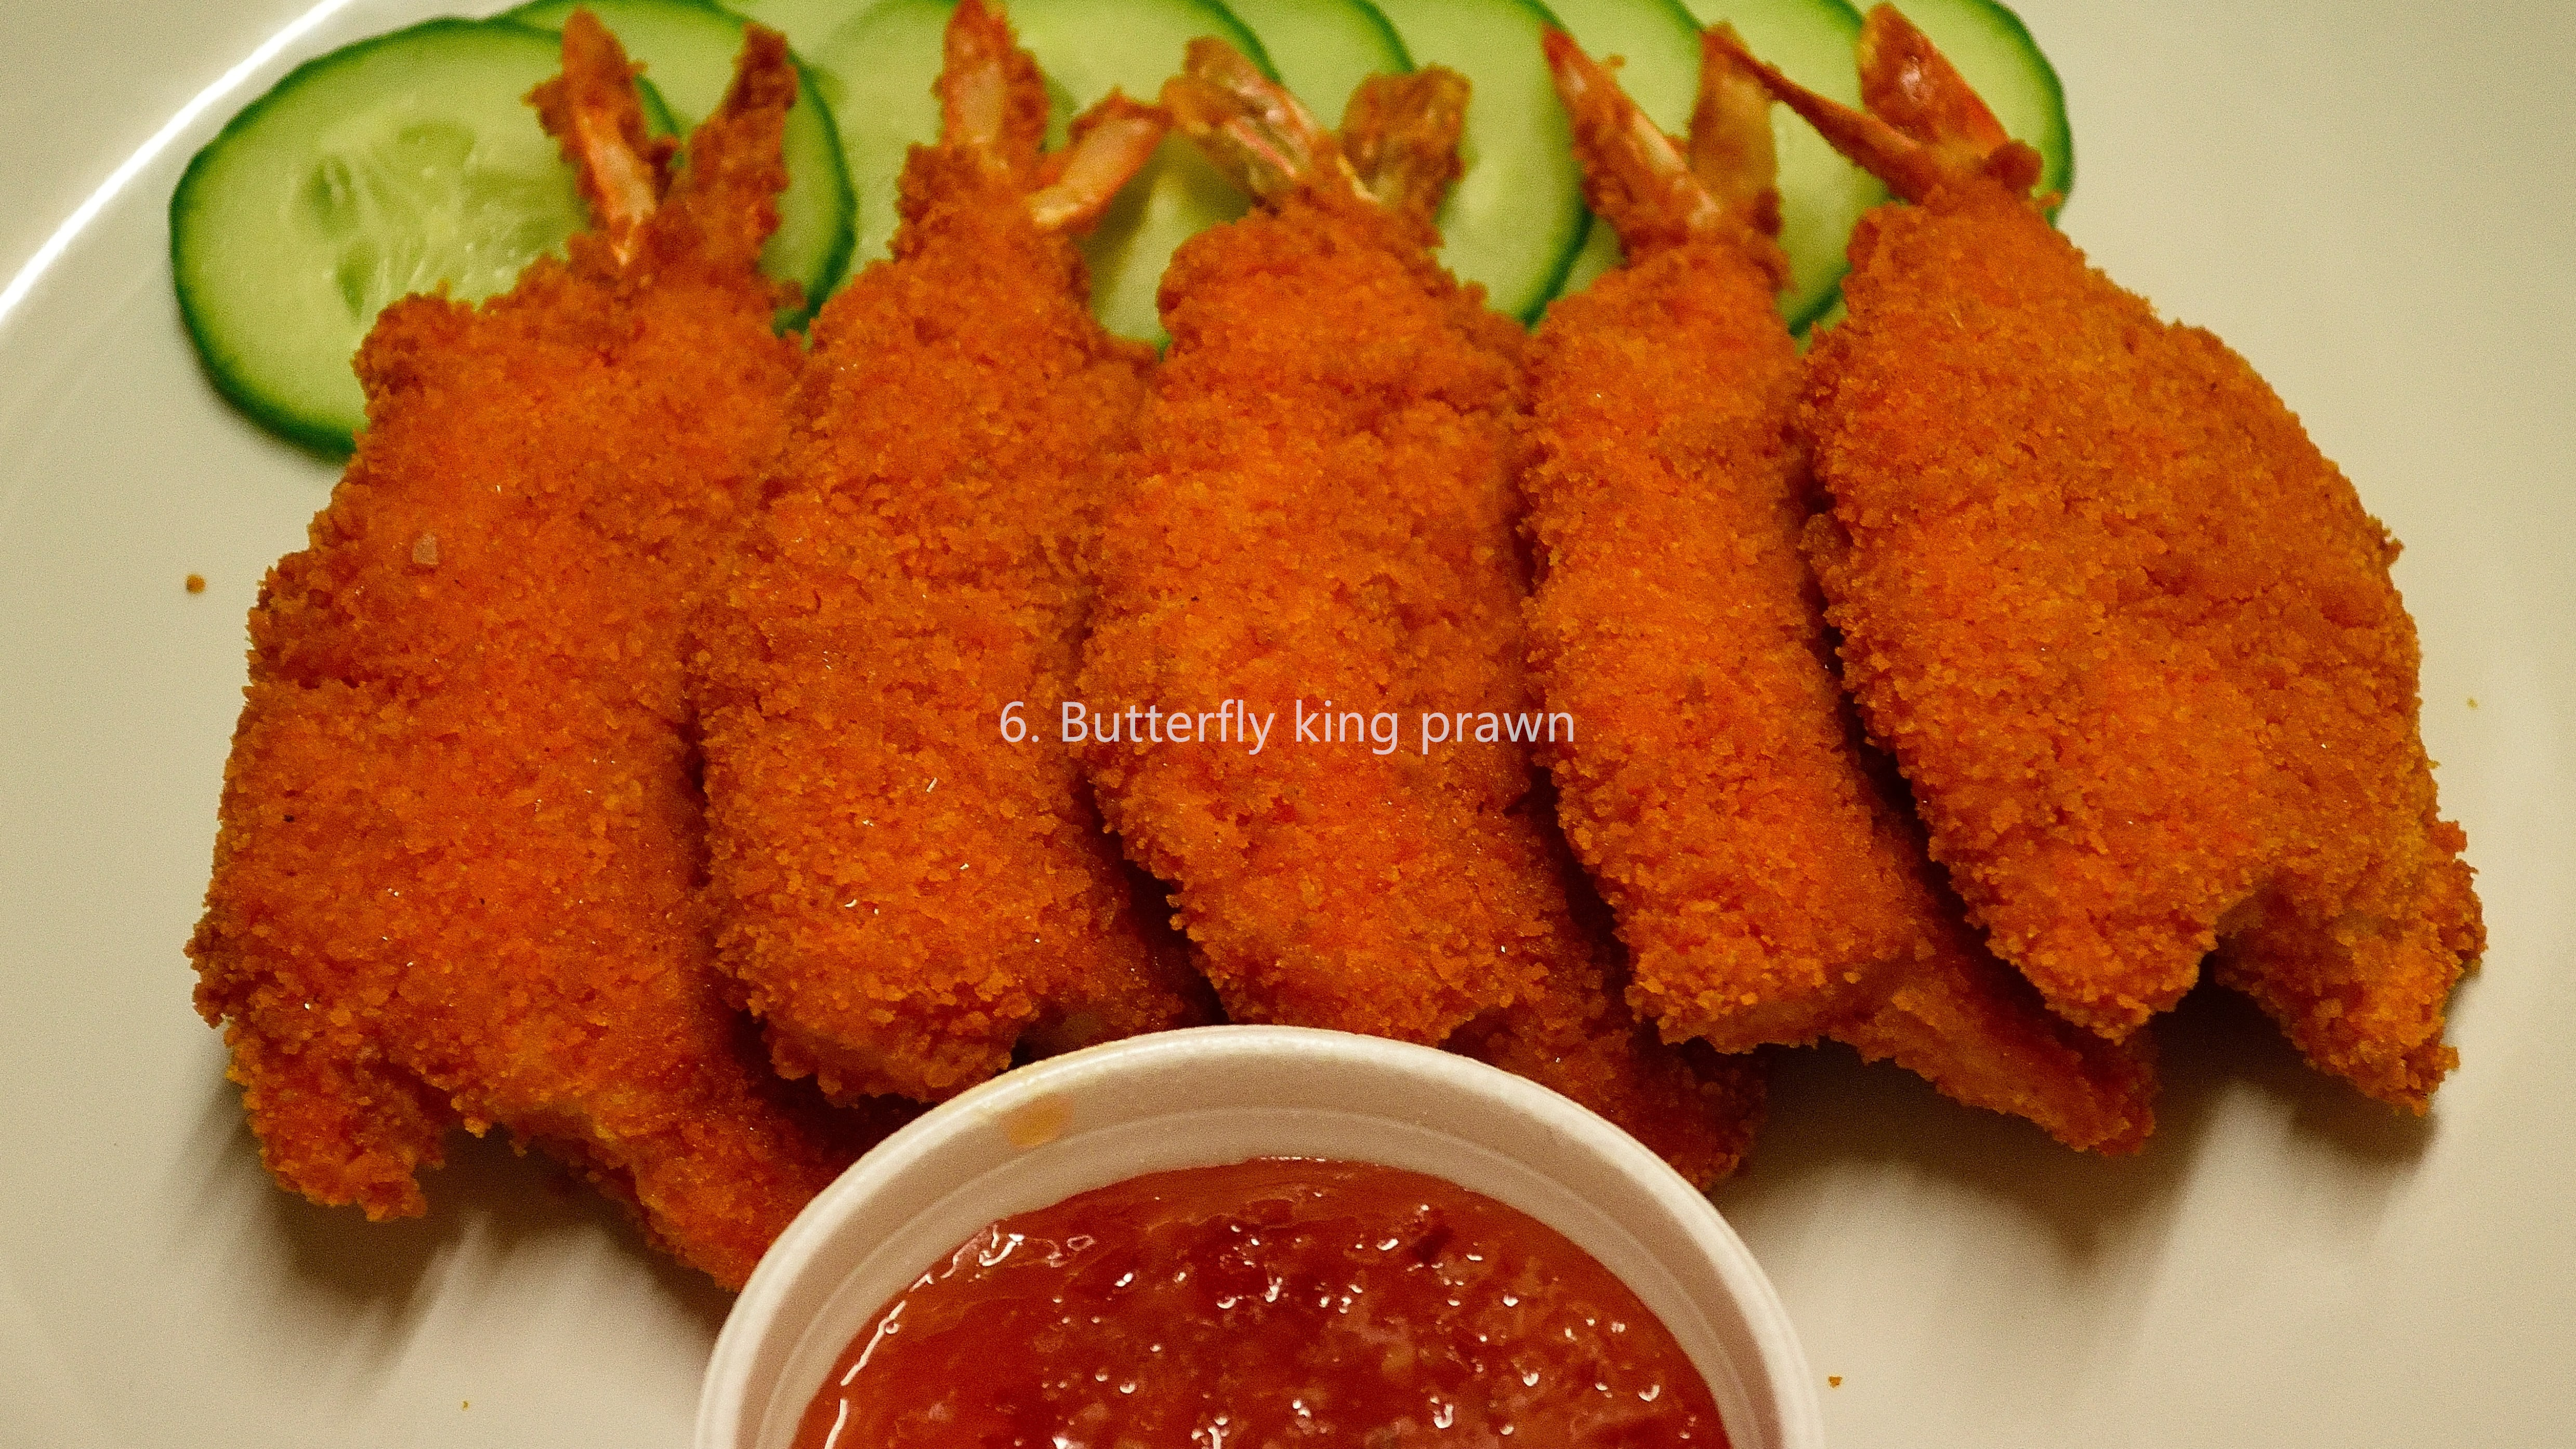 Butterfly king prawn with sweet chilli dip